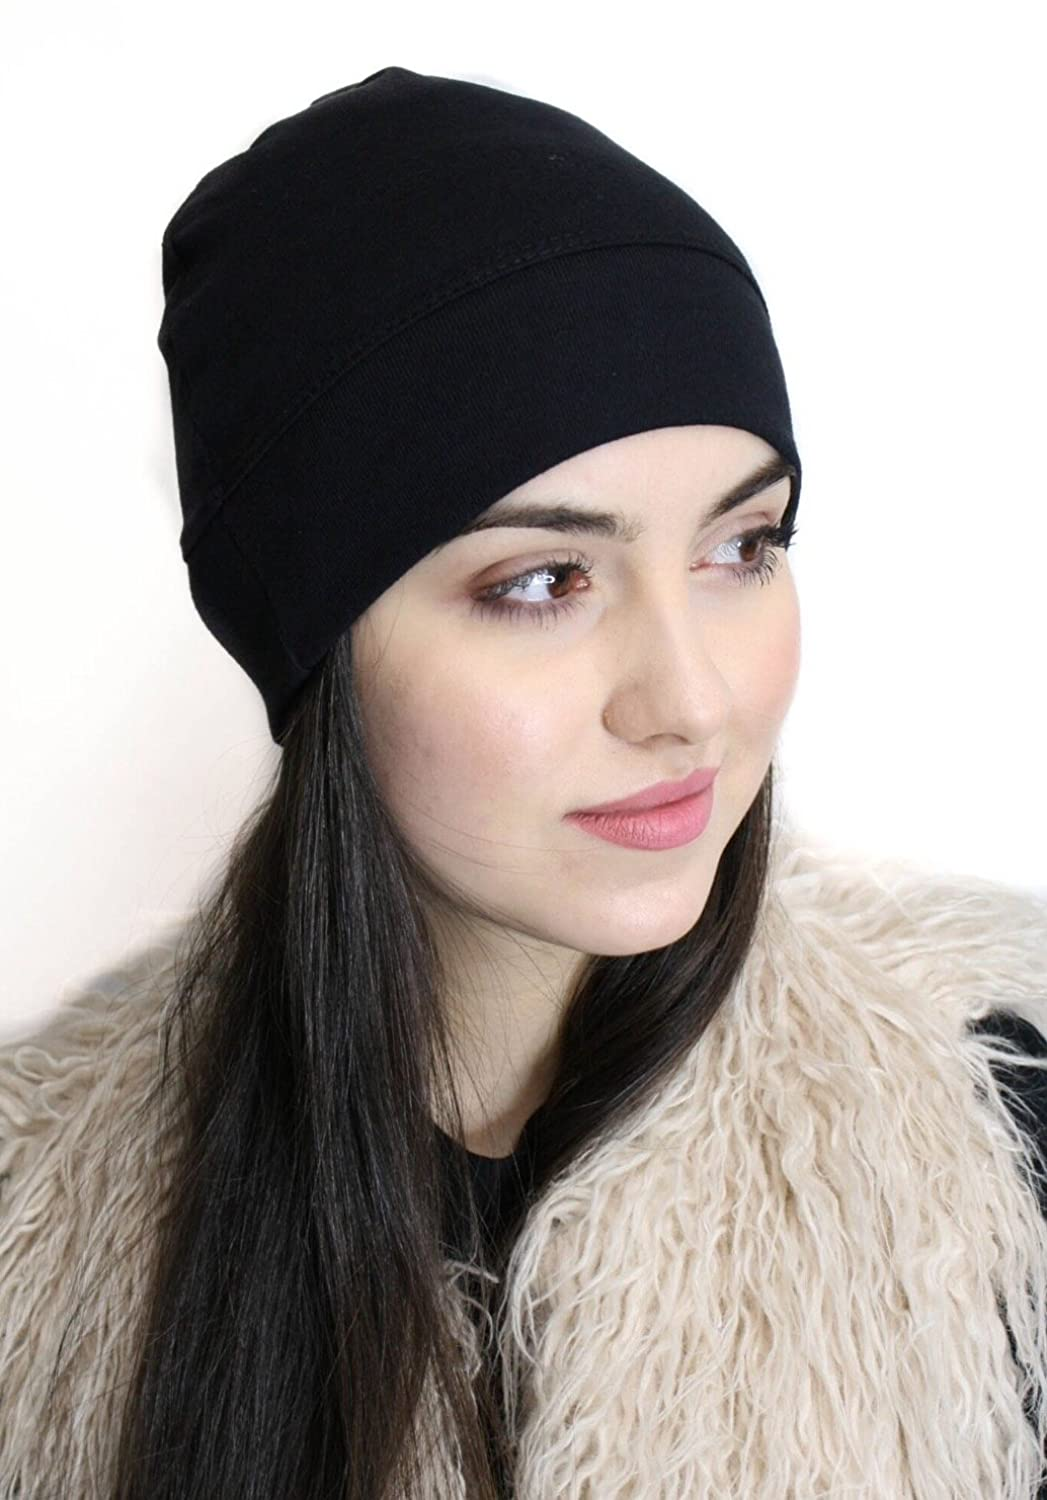 8451be177c705 Soft Jersey Blend Sleep Hat Comfortable Soft Hat Liner Beanie Skull Cap  Chemo Hair Loss Head Covering at Amazon Women's Clothing store: